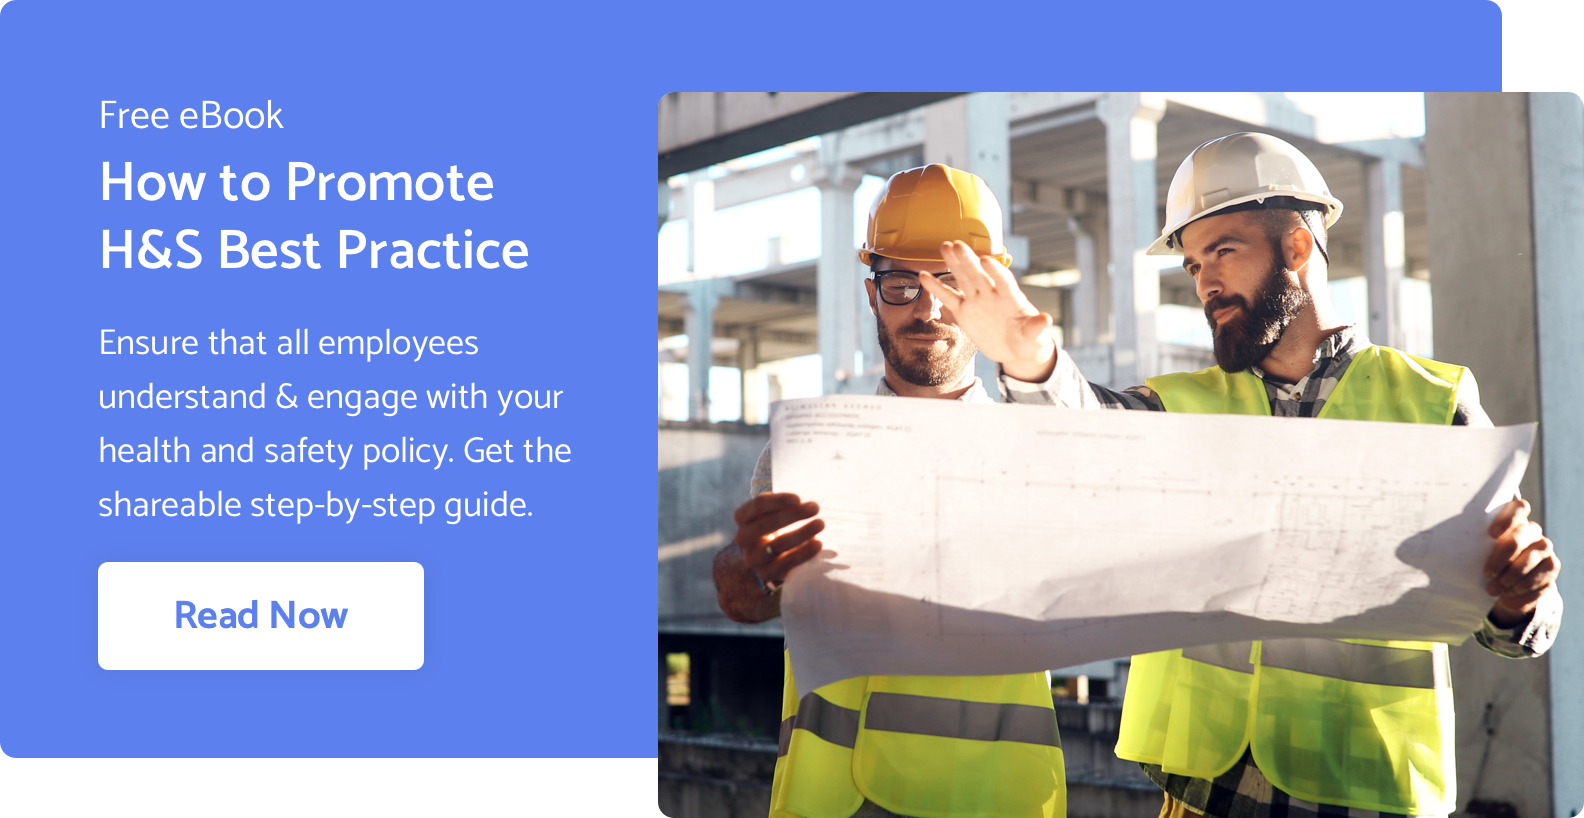 How to Promote H&S Best Practice eBook